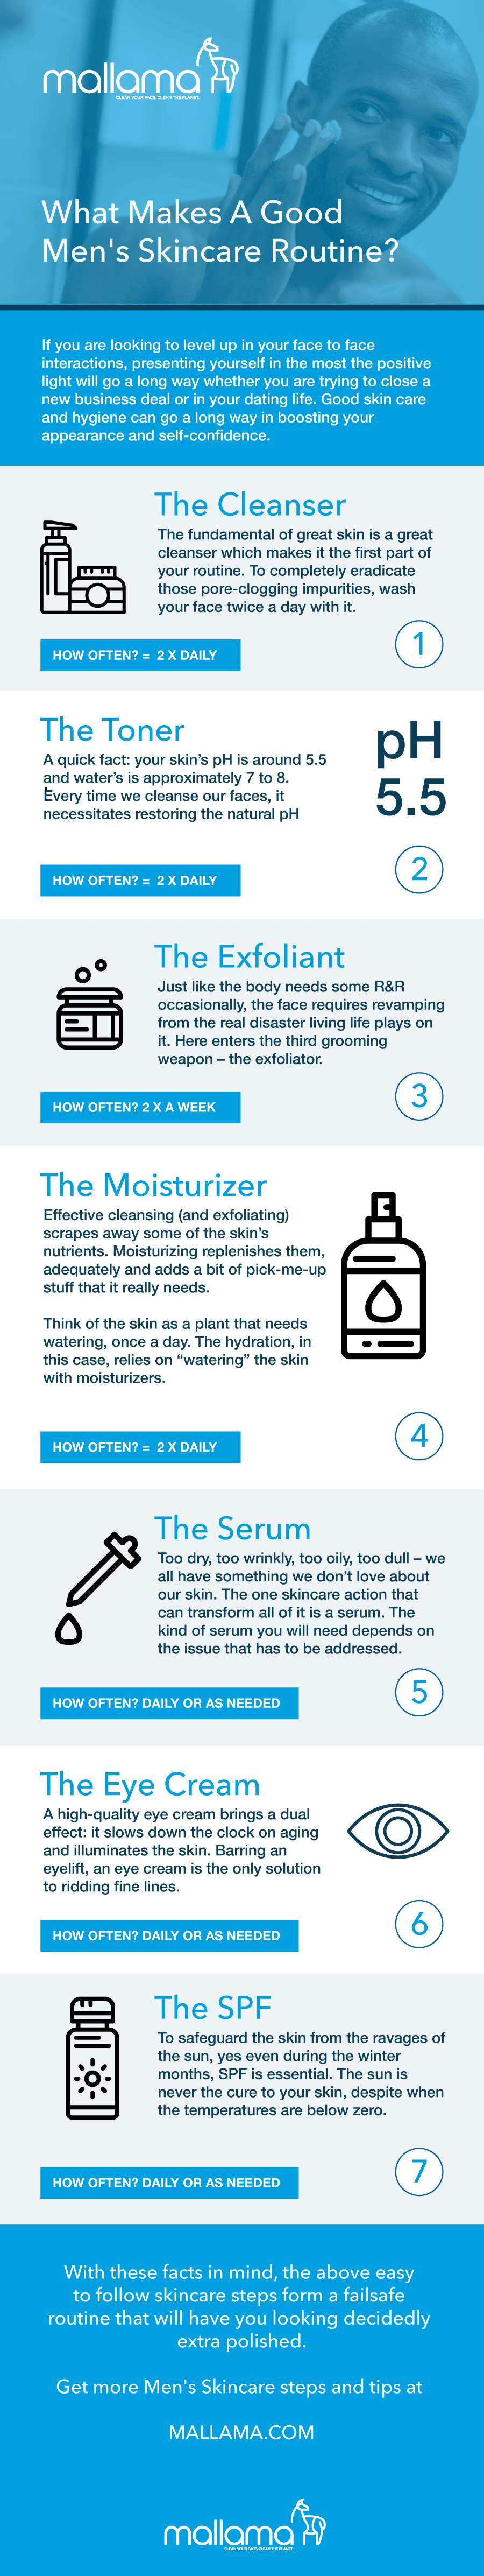 Cleansing vs. Exfoliating: The Differences All Men Should Know